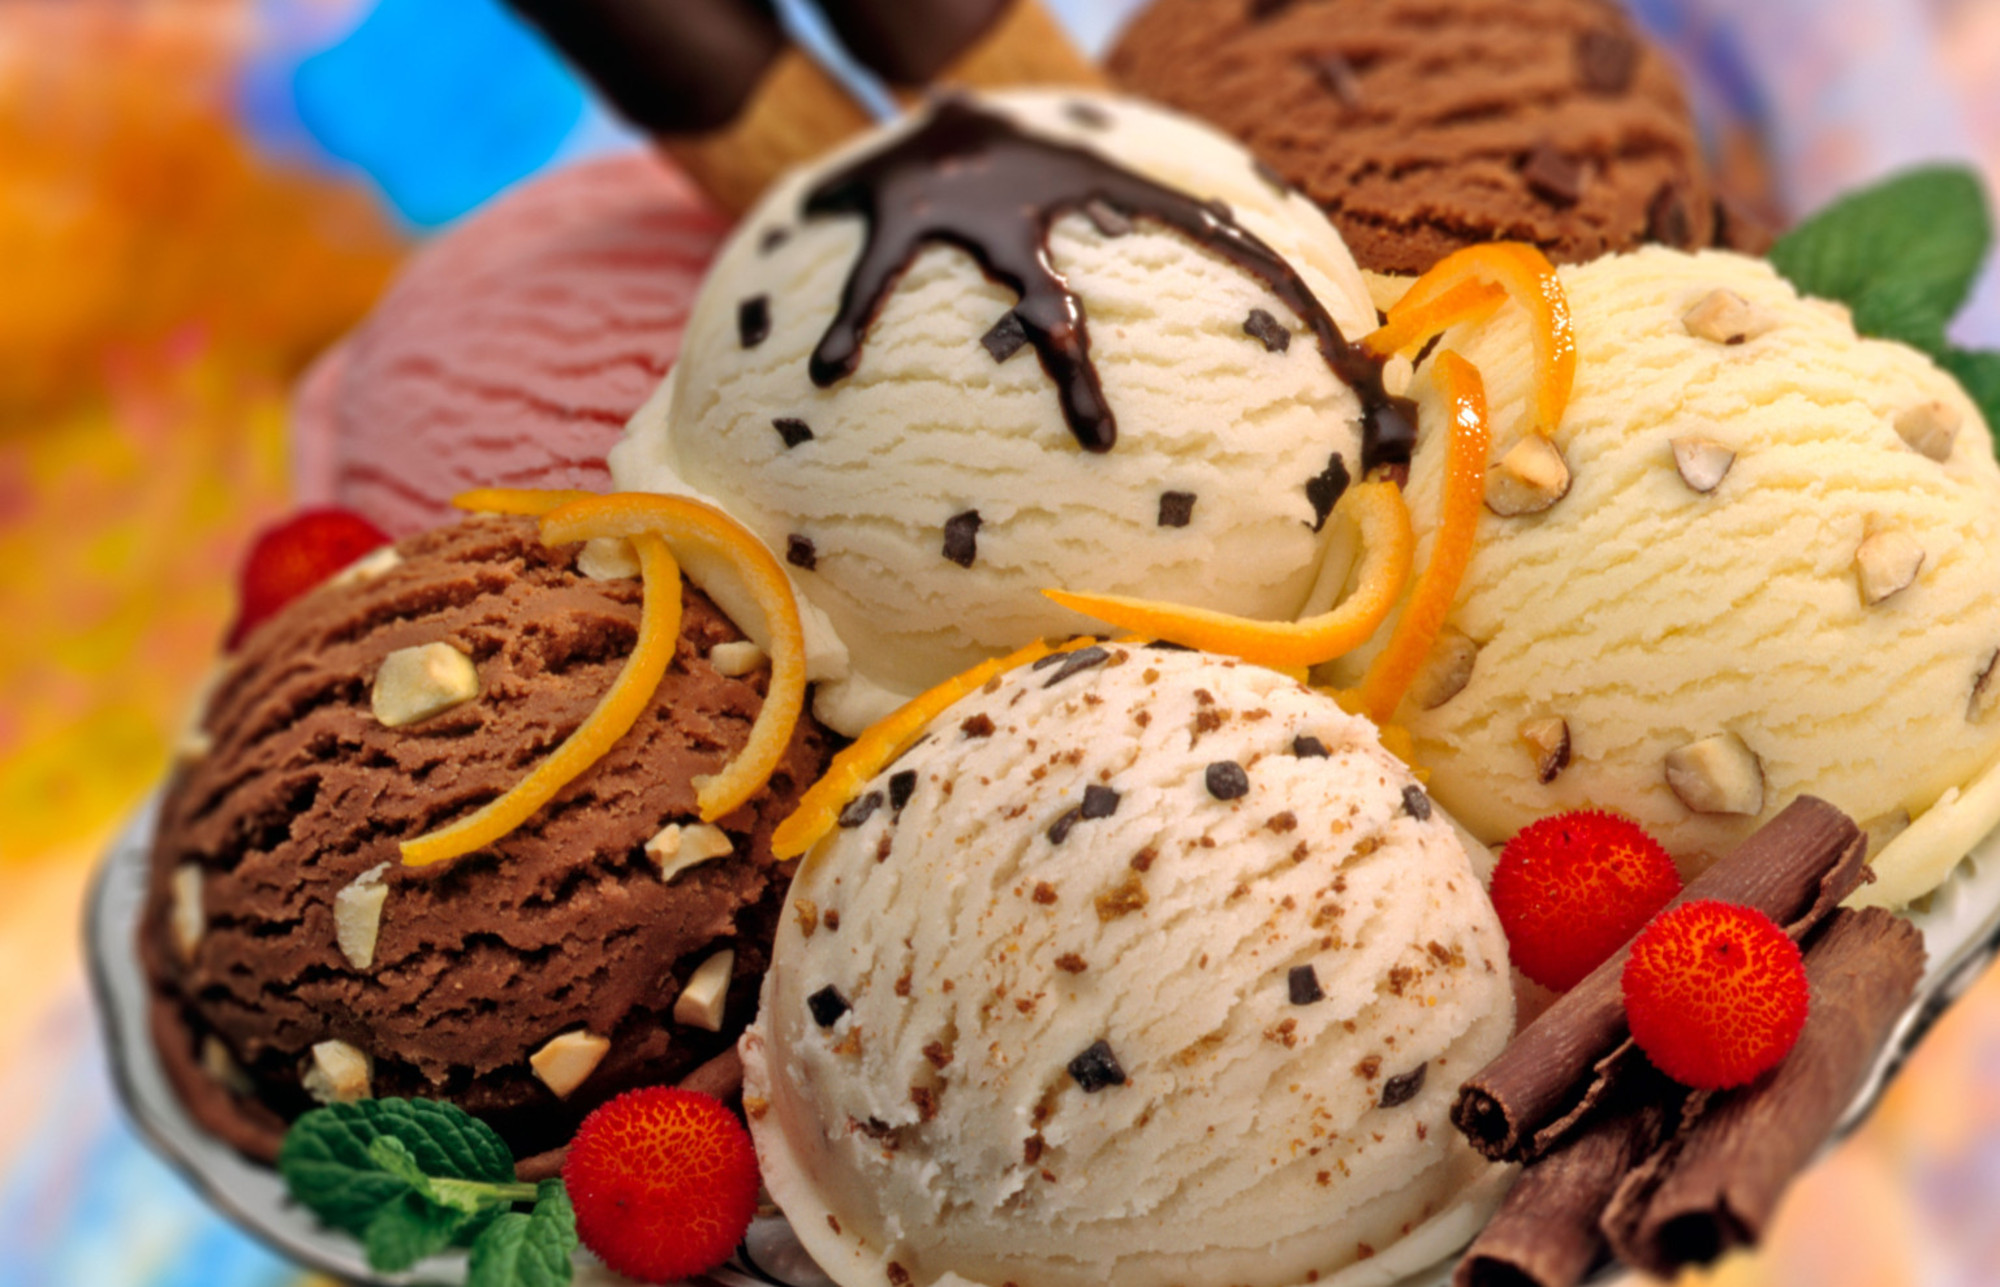 5 Crazy Ice Cream Flavors!!!